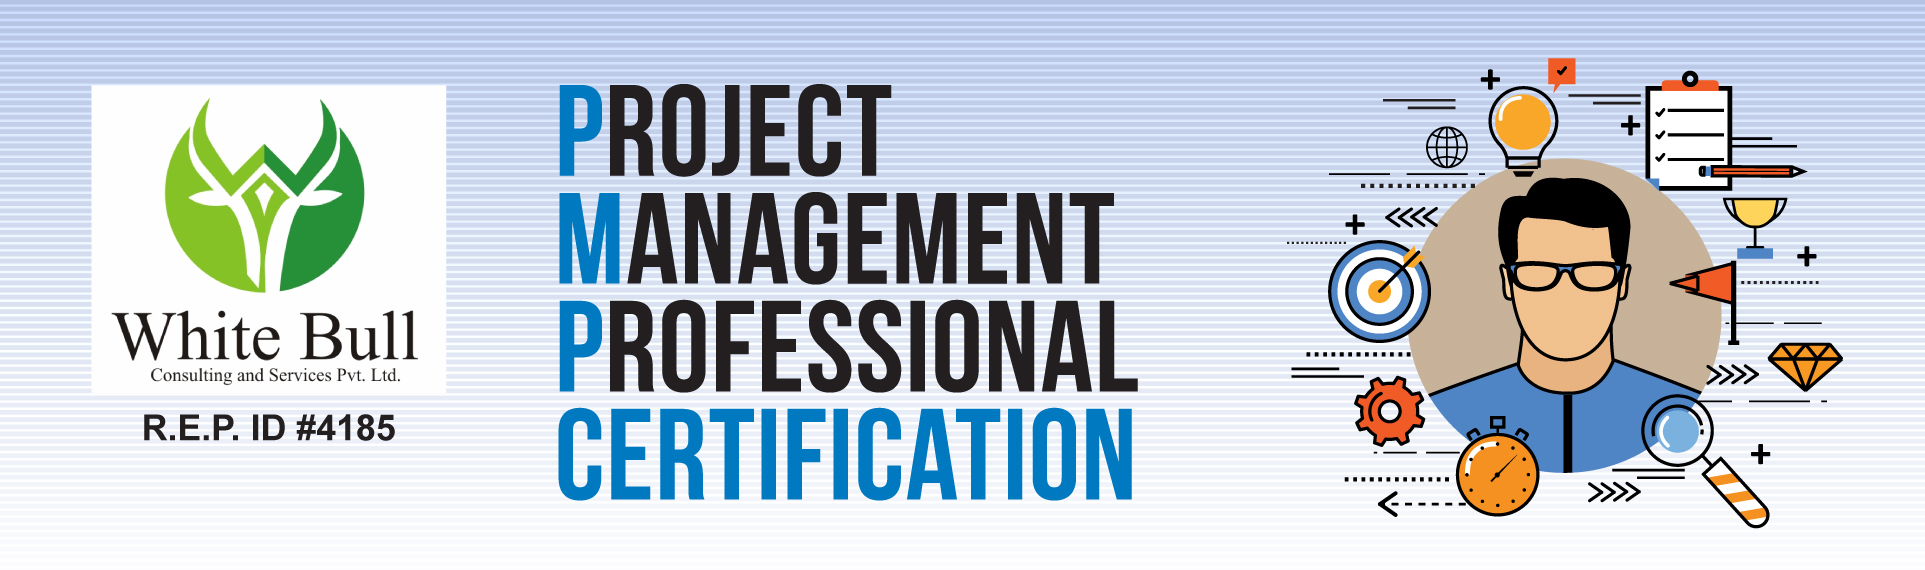 Project Management Professional Training Education Lanes